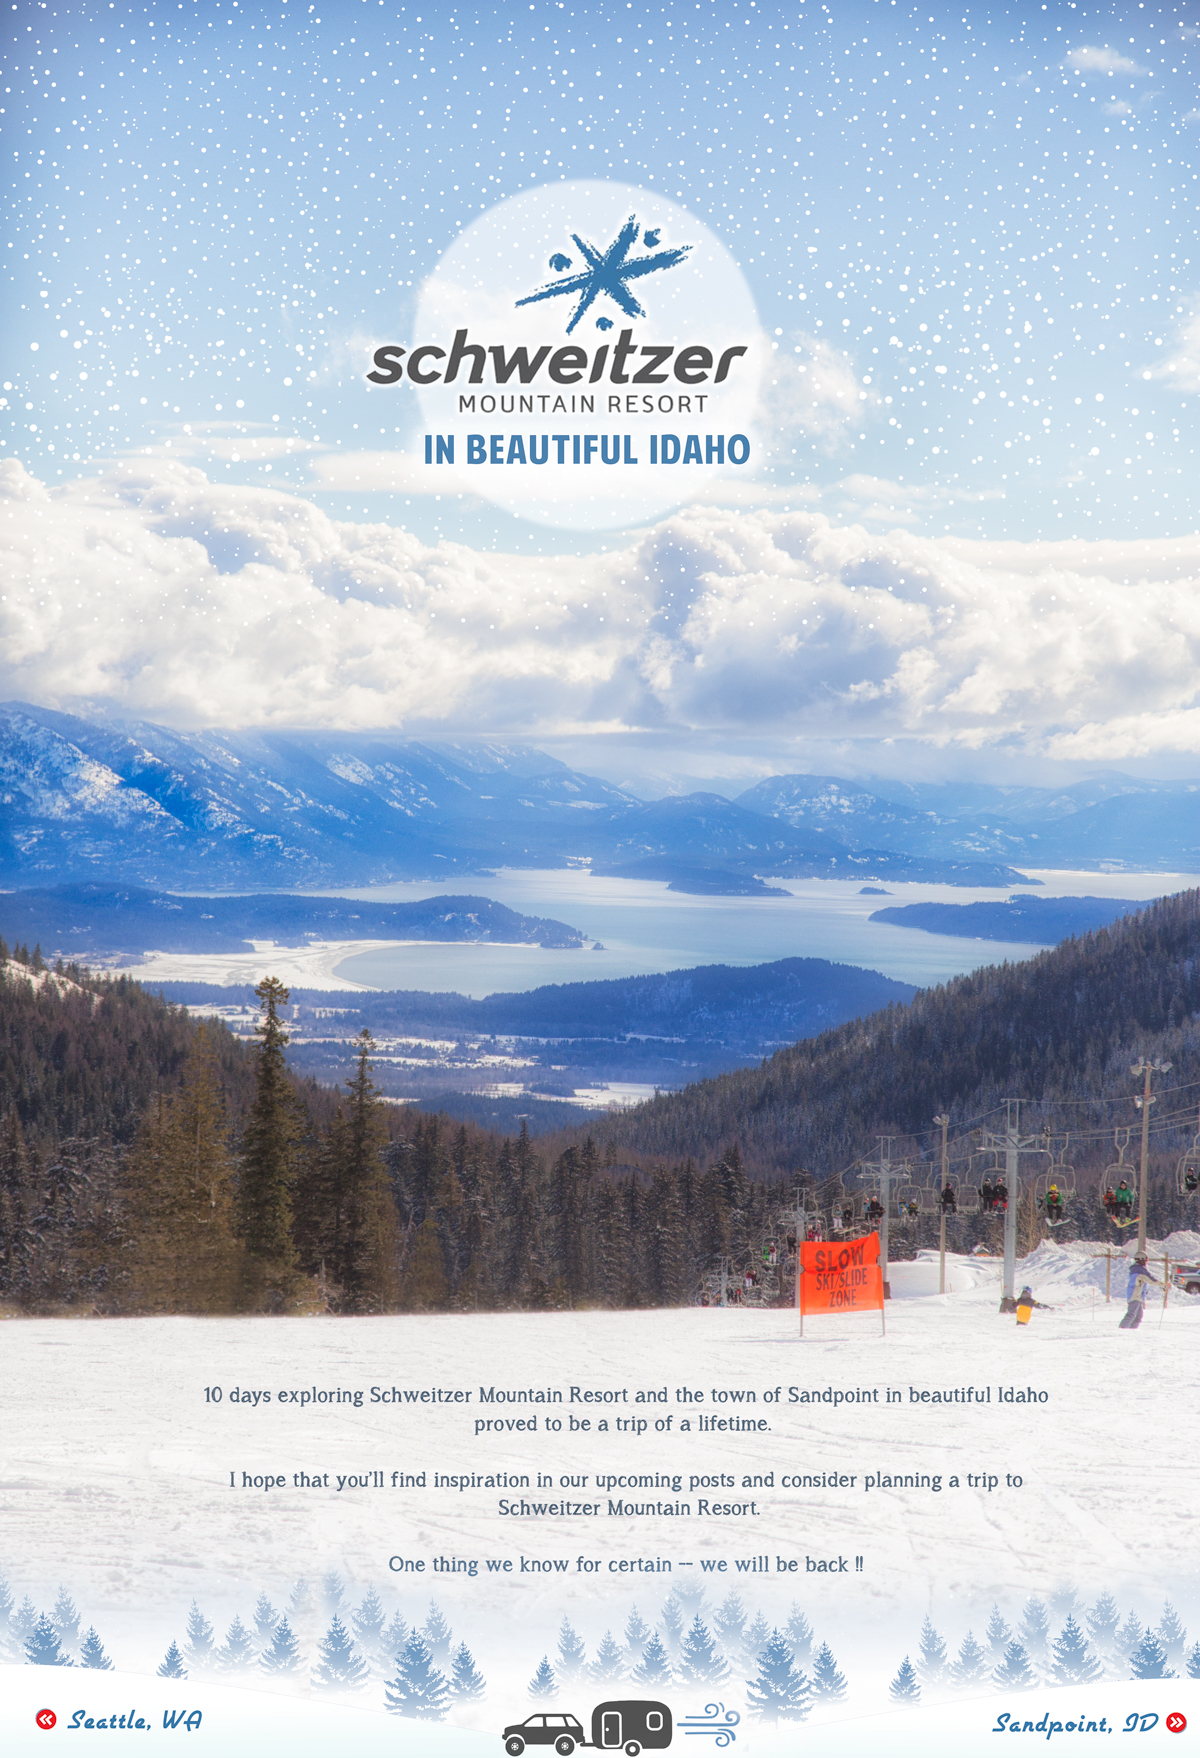 Schweitzer Mountain Resort in Beautiful Idaho